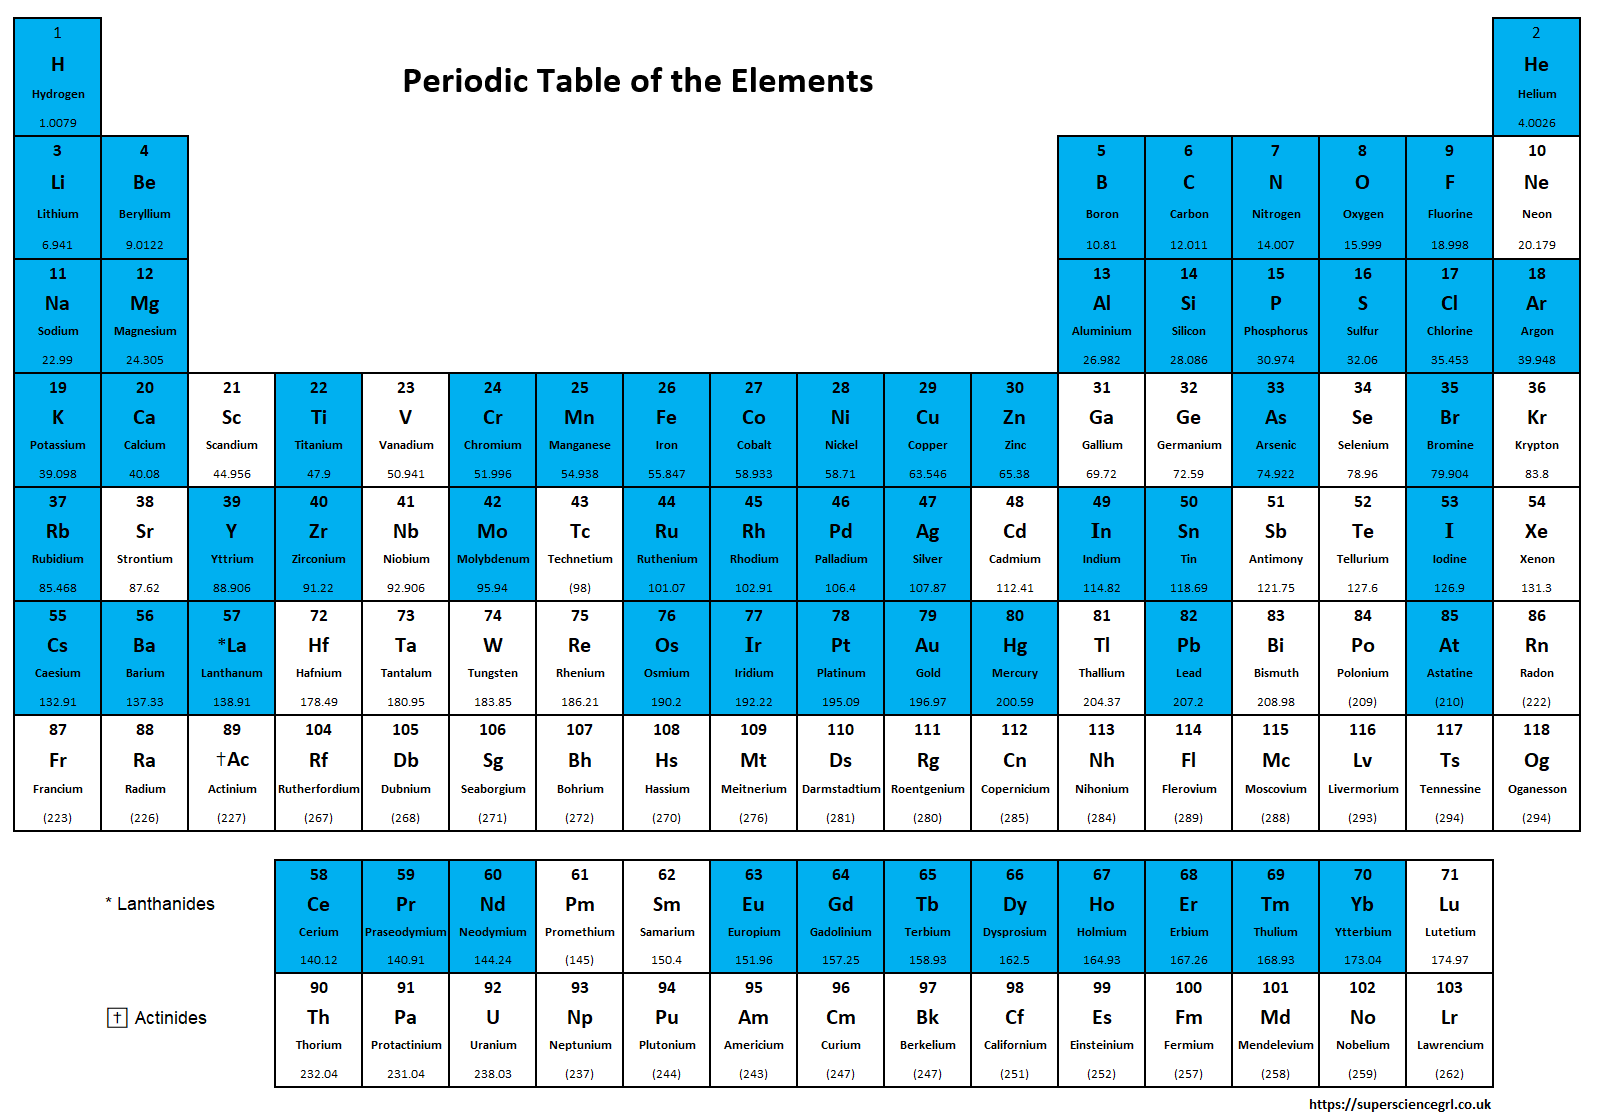 My highlighted periodic table